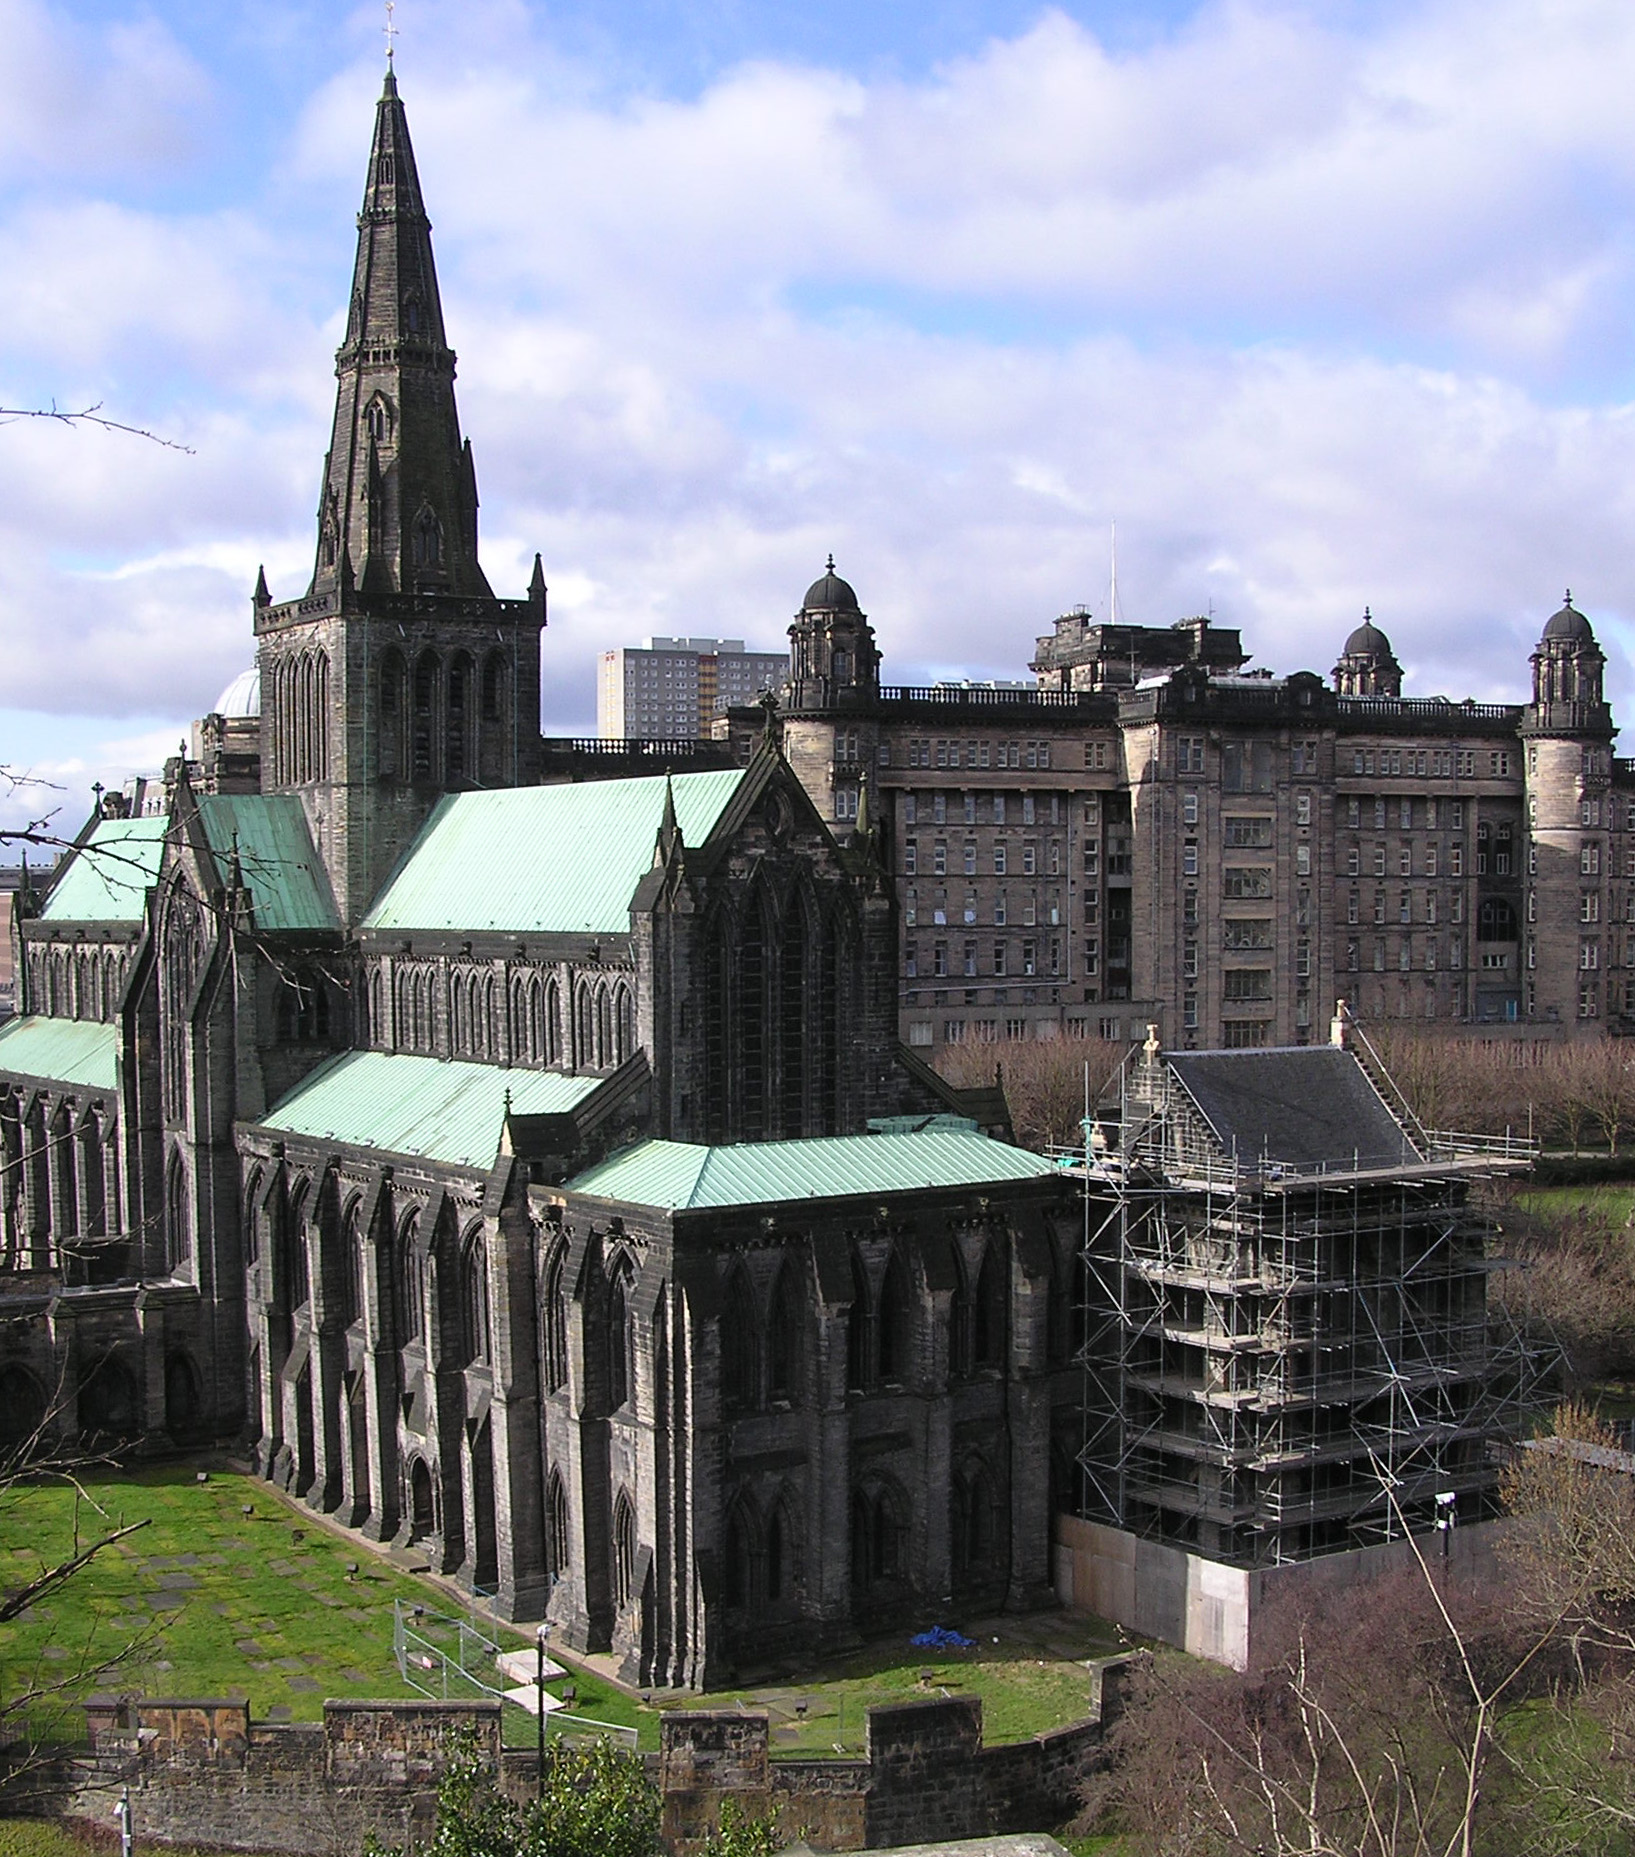 File:Wfm glasgow cathedral.jpg - Wikimedia Commons